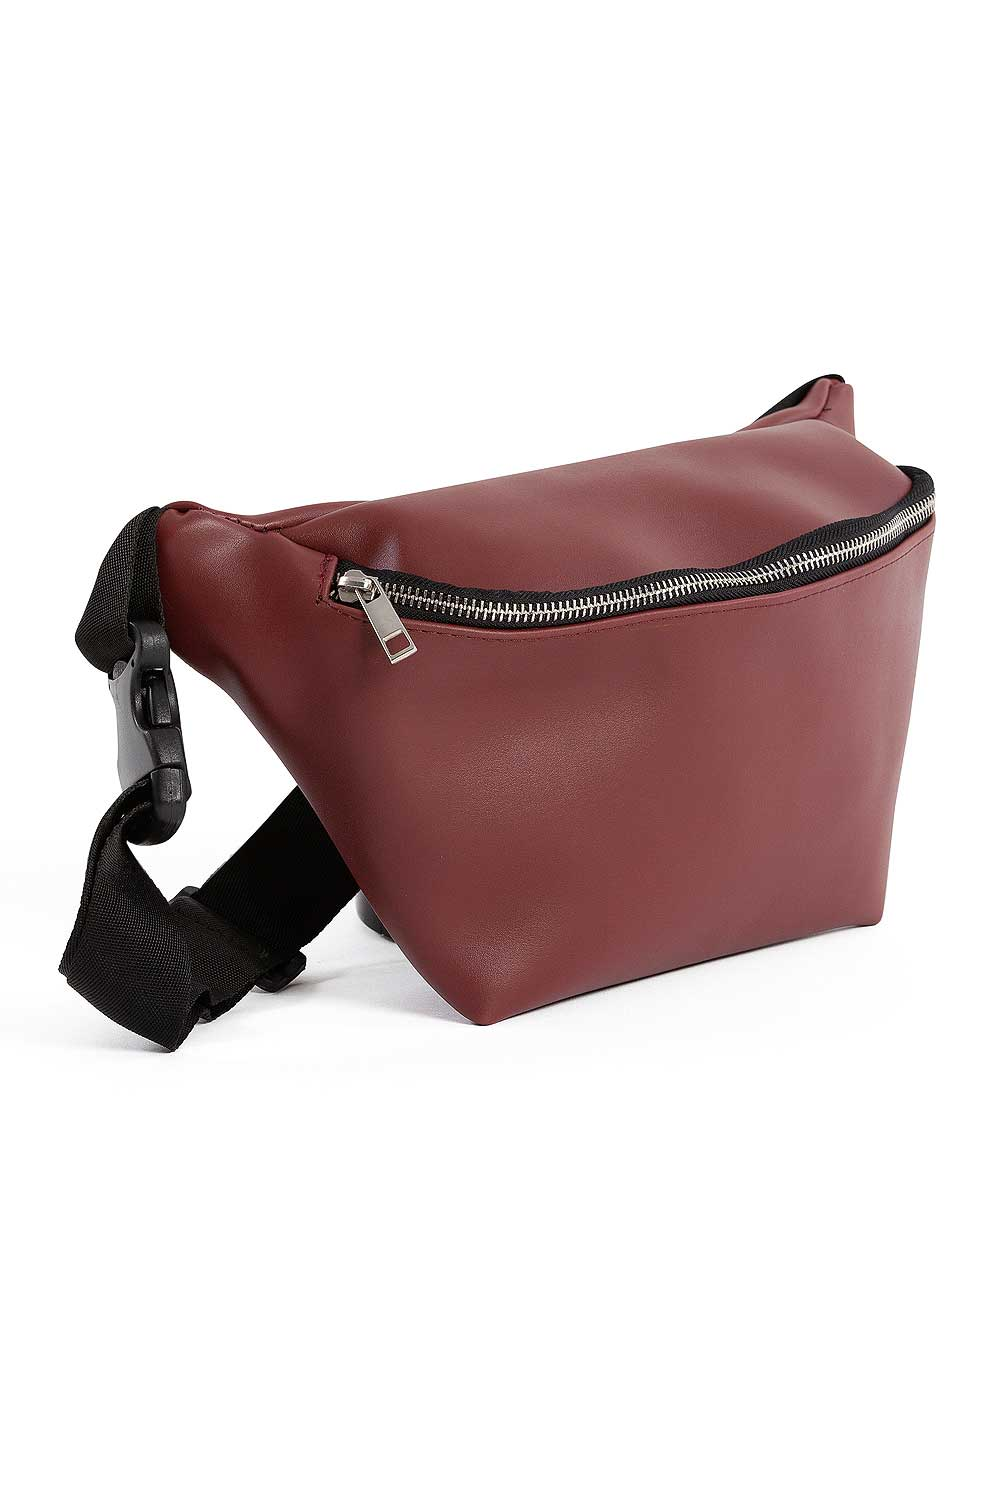 MIZALLE Zipper Detailed Waist Bag (Claret Red) (1)